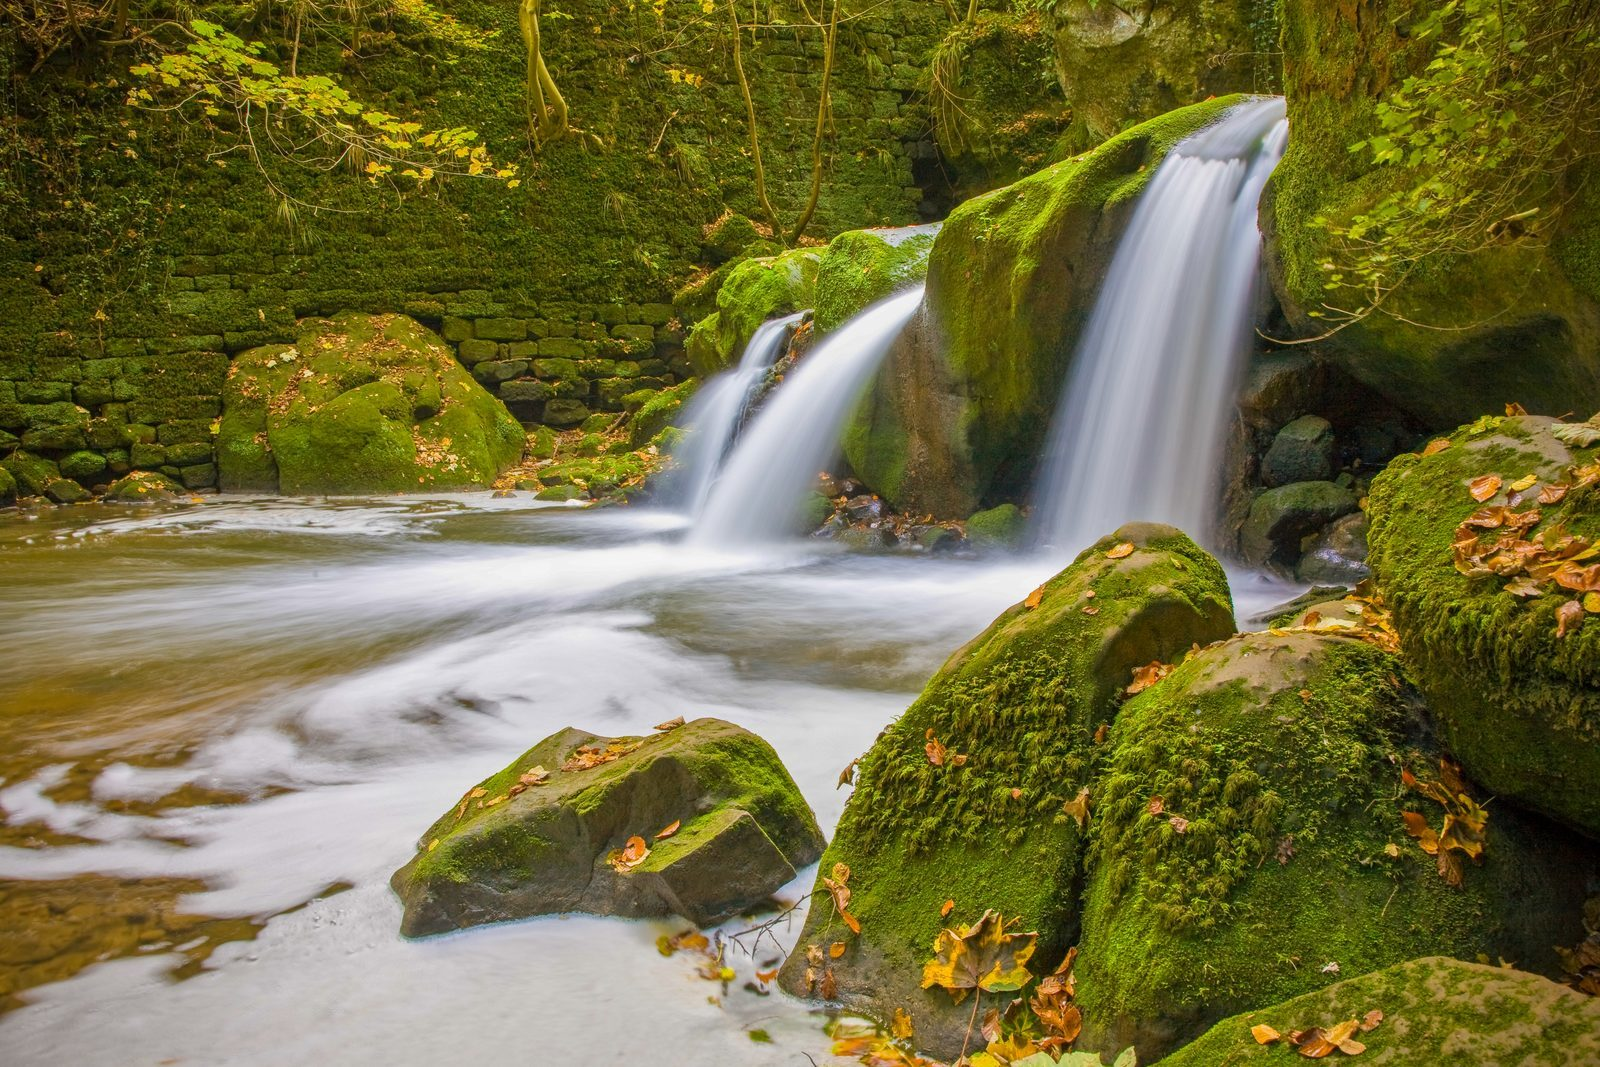 Waterfall from Mullerthal to visit from Walsdorf